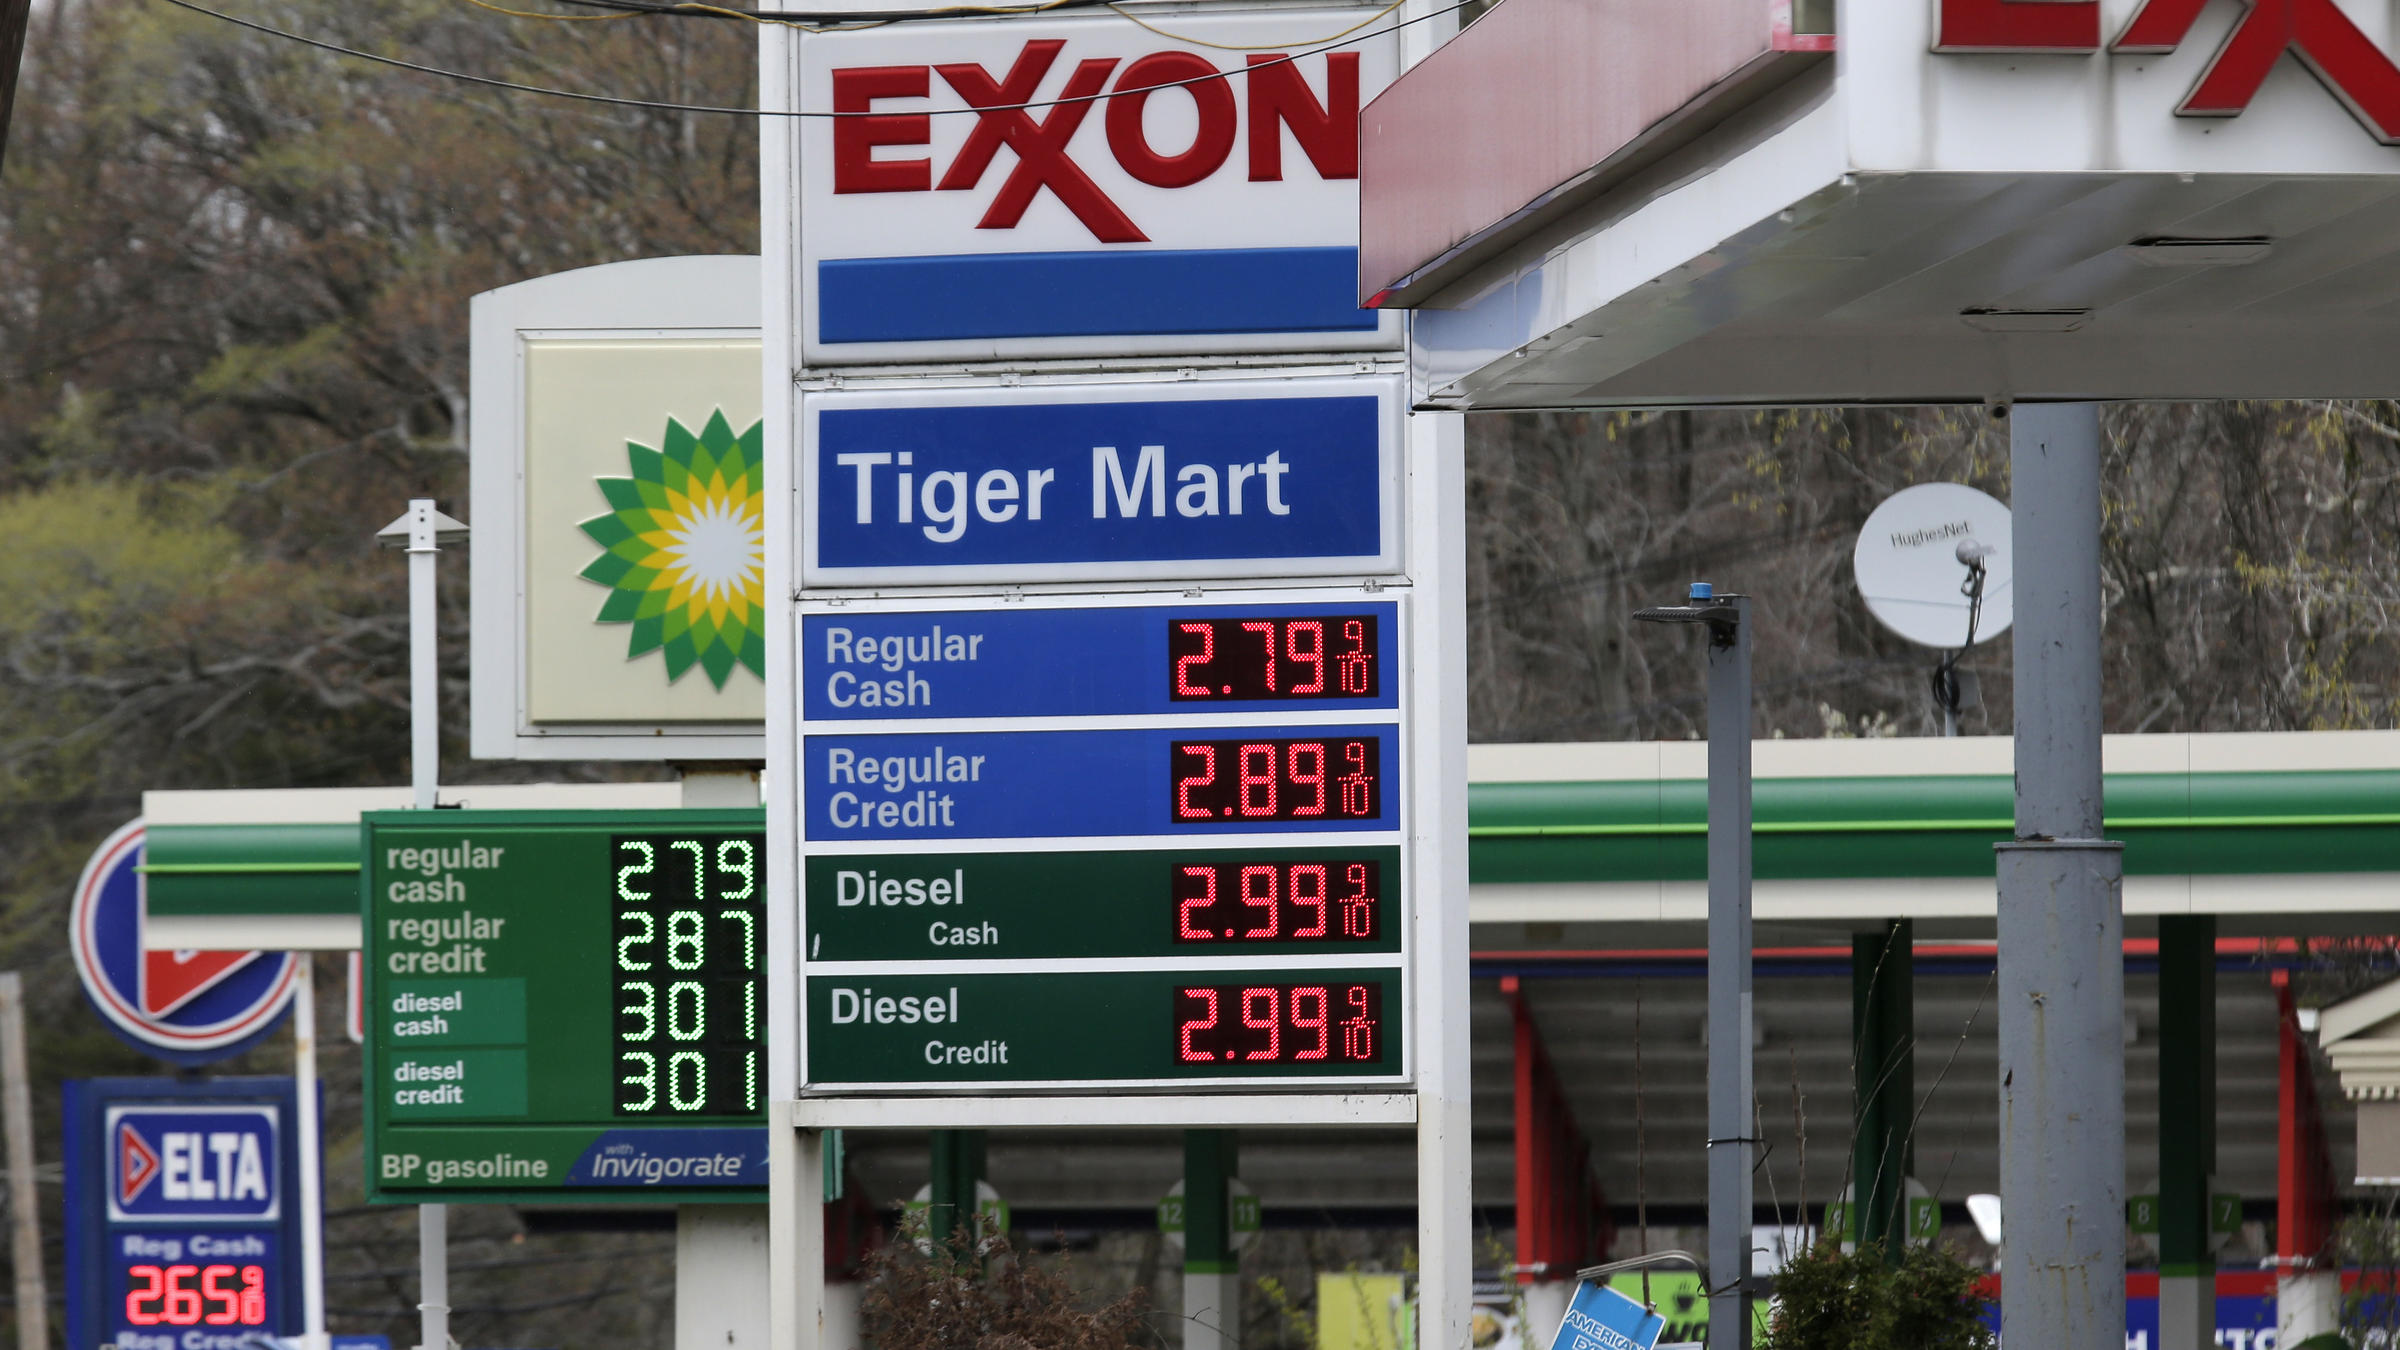 Oil Prices Rise After Trump S Iran Speech But Supply And